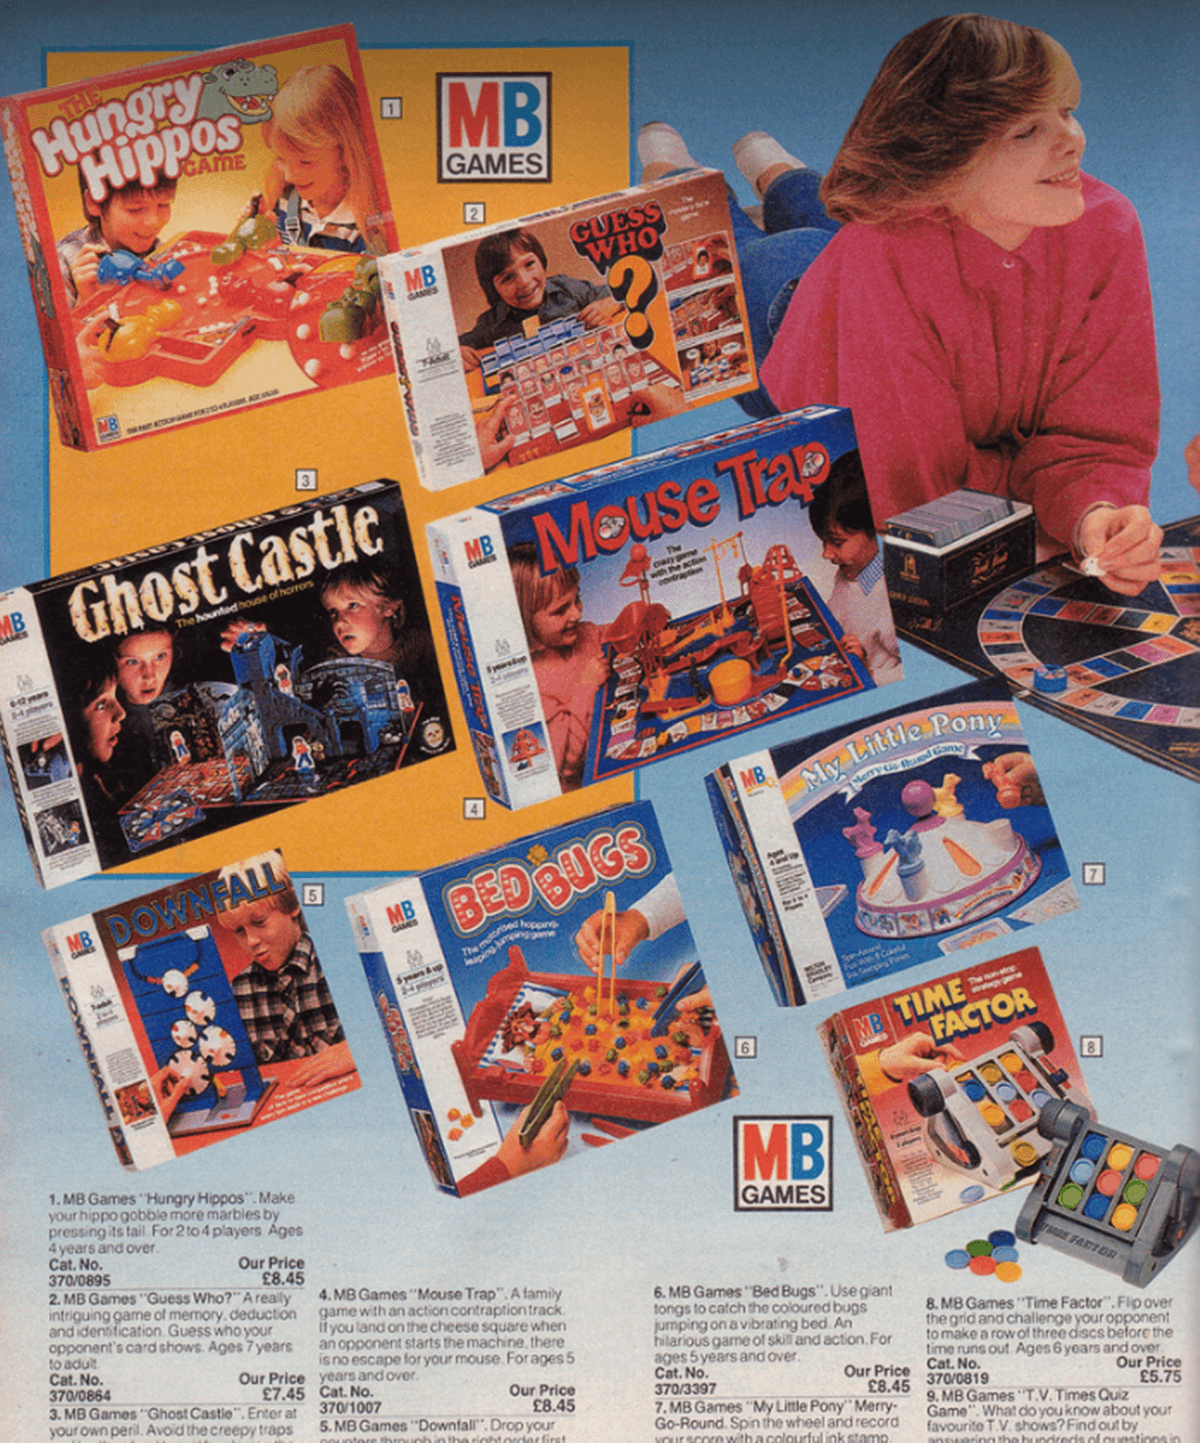 7 Take A Look Inside An Argos Catalogue From 1986!